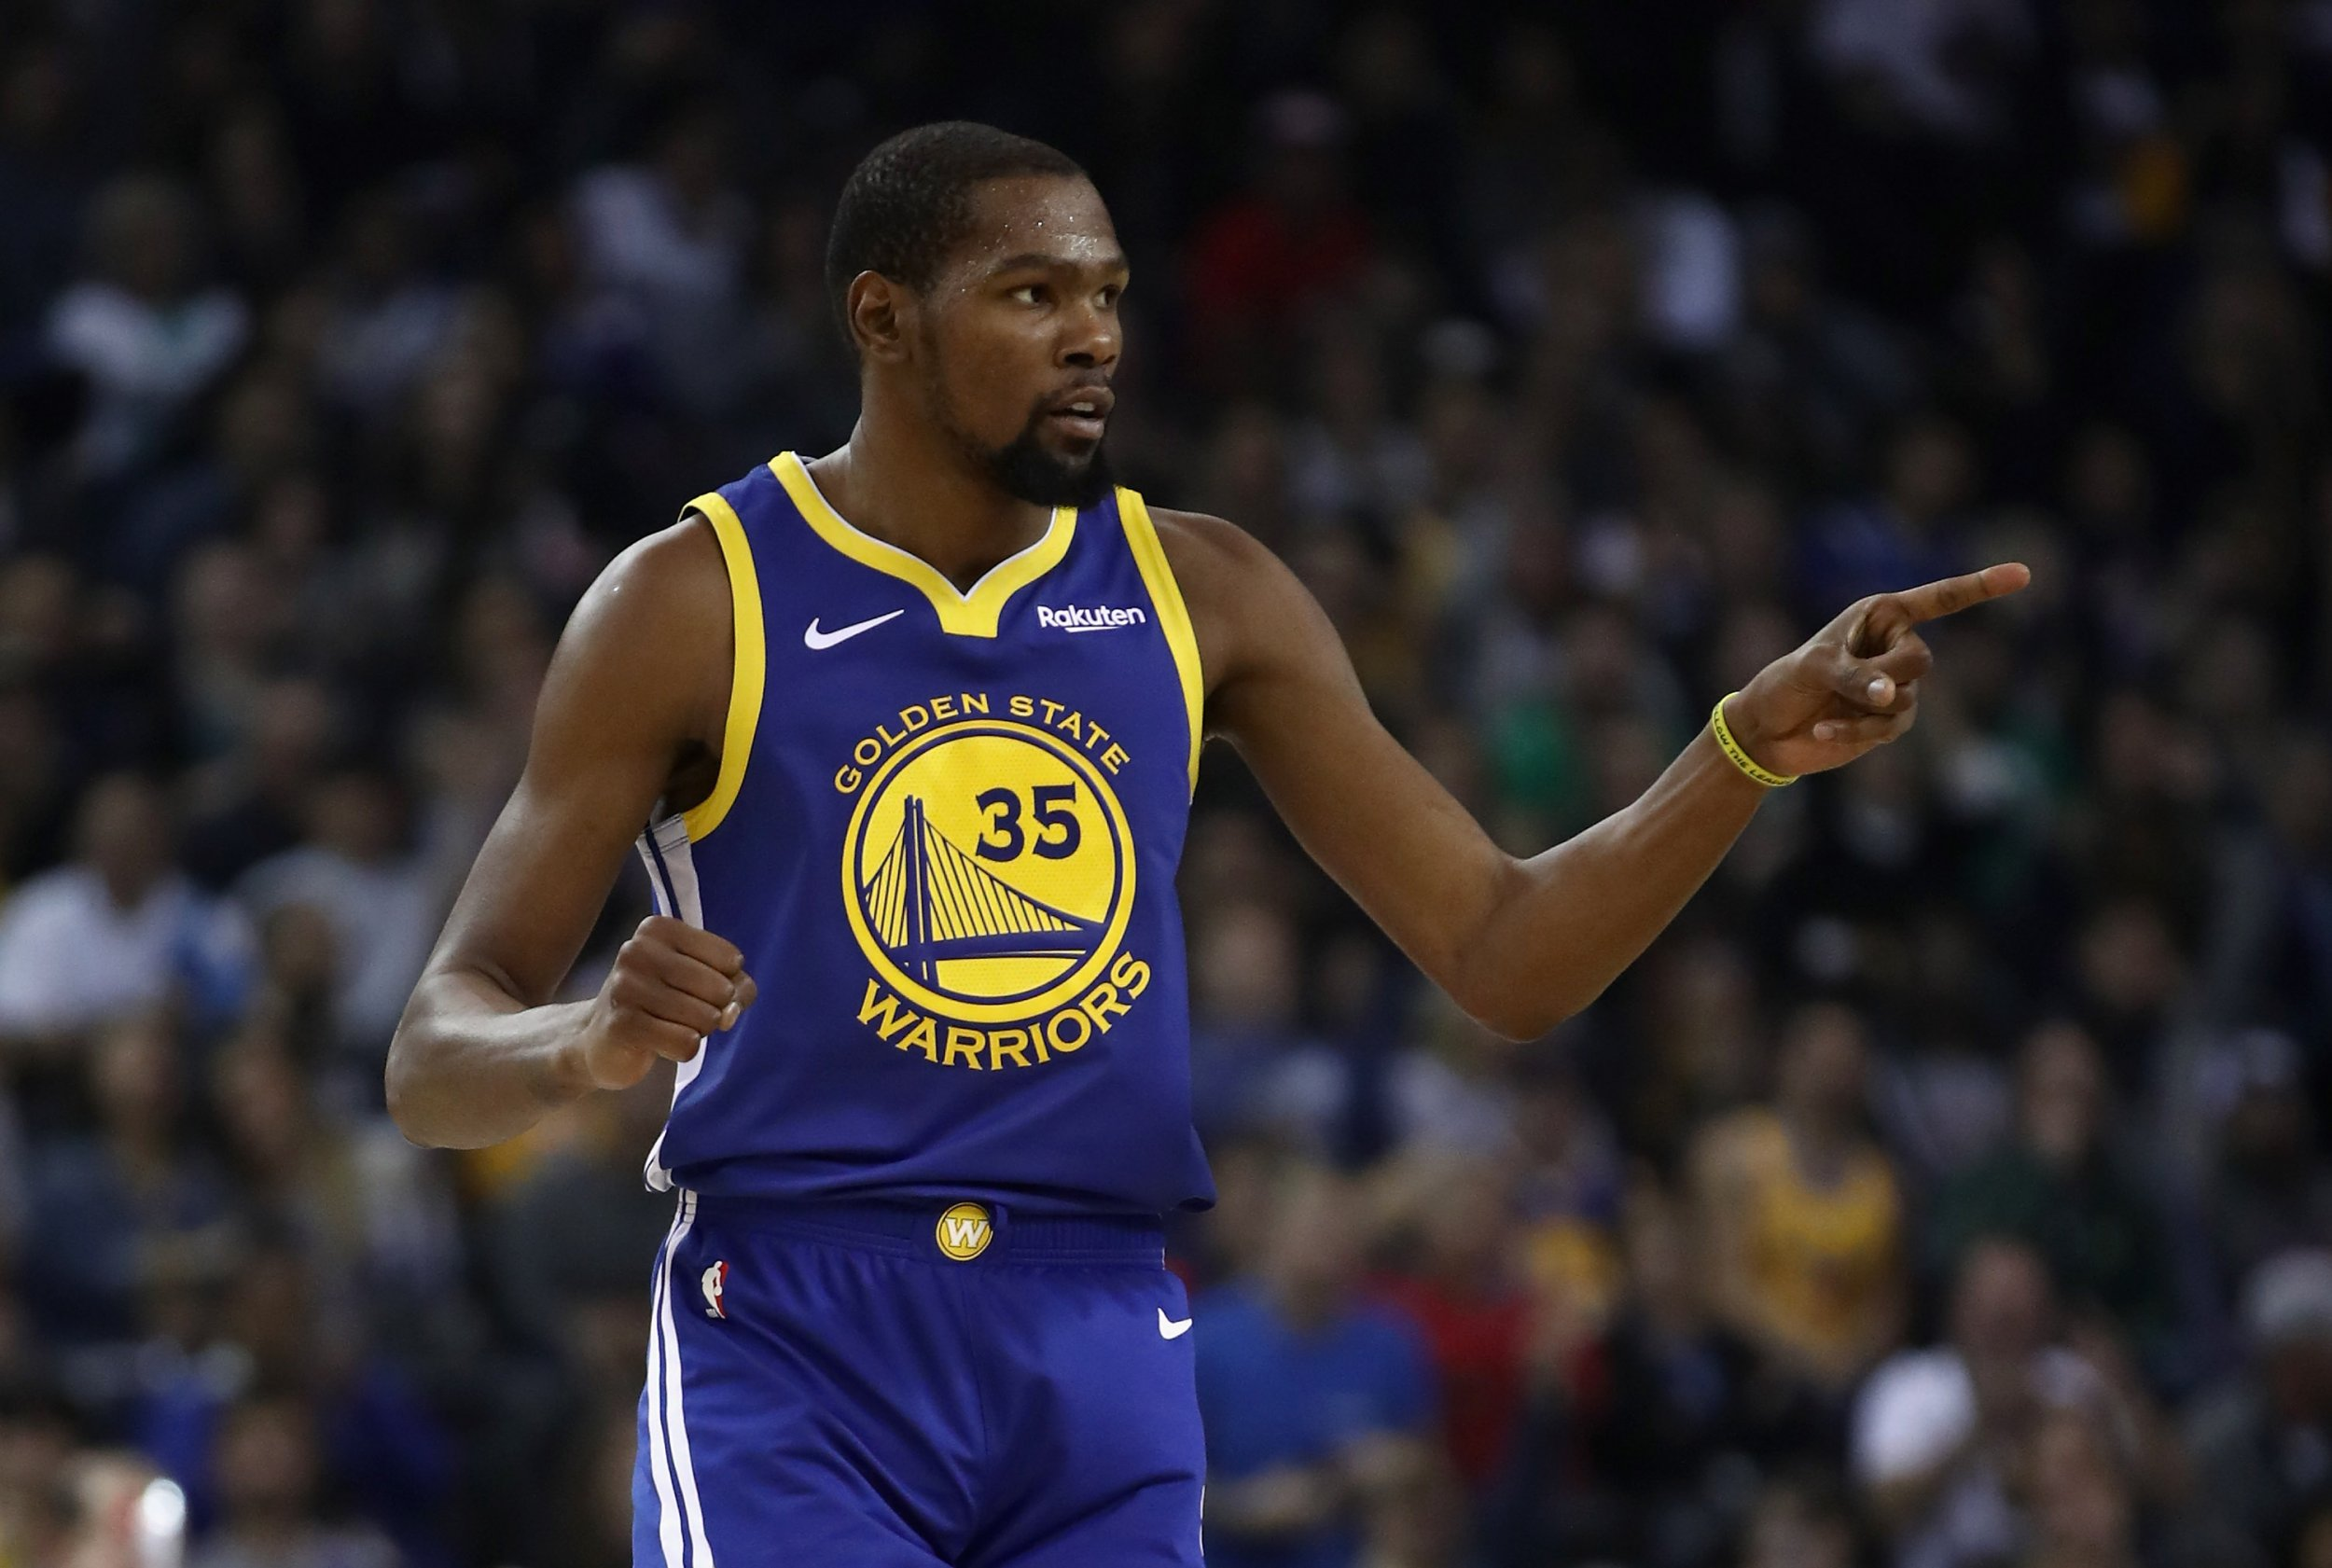 f6796ebf4524 GettyImages-1061305170 Kevin Durant  35 of the Golden State Warriors ...